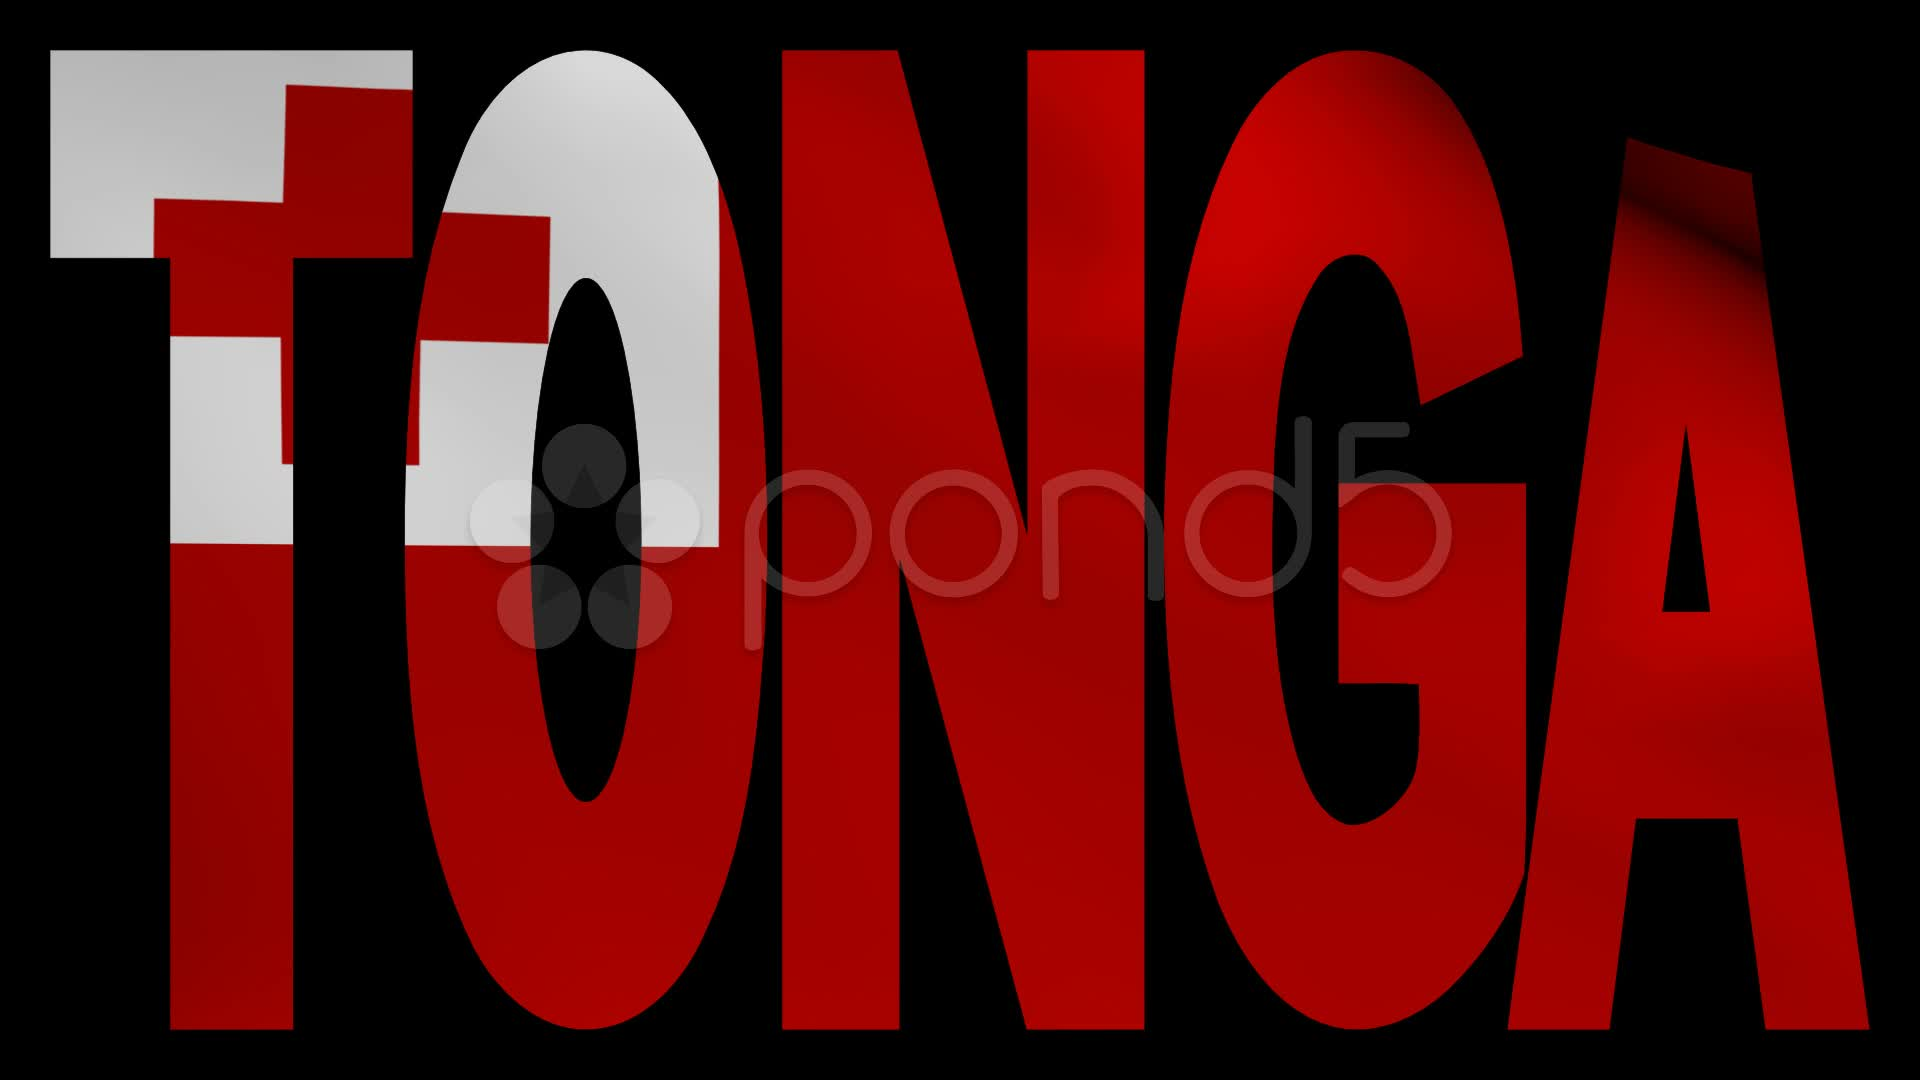 Tonga text with fluttering flag animation Video 21375670 1920x1080